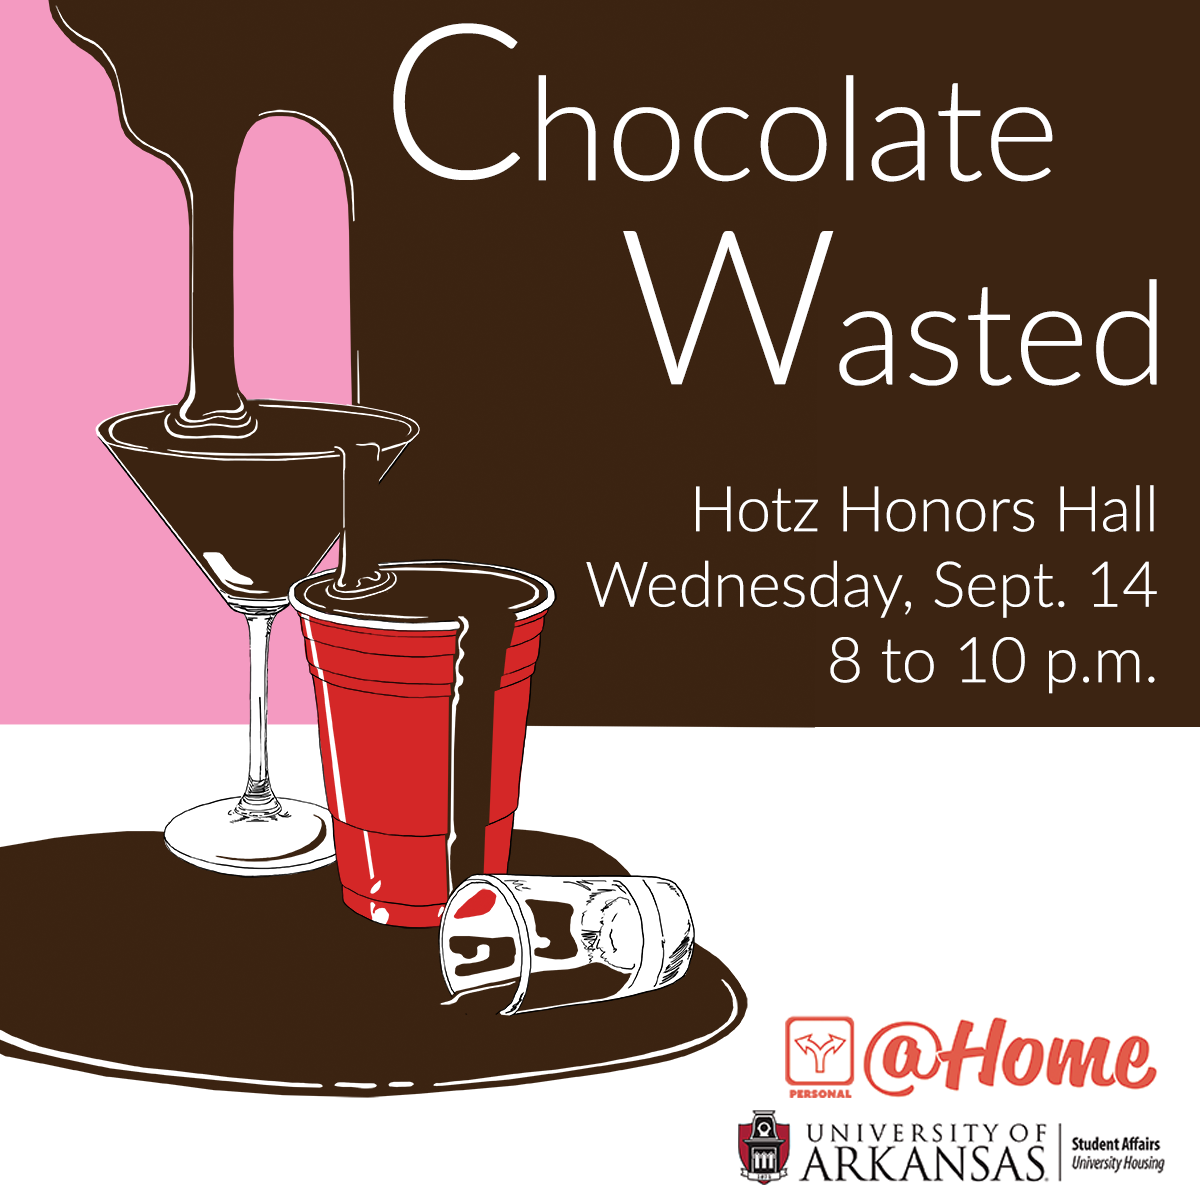 Chocolate Wasted Makes Alcohol Education Delicious | #UARKHome